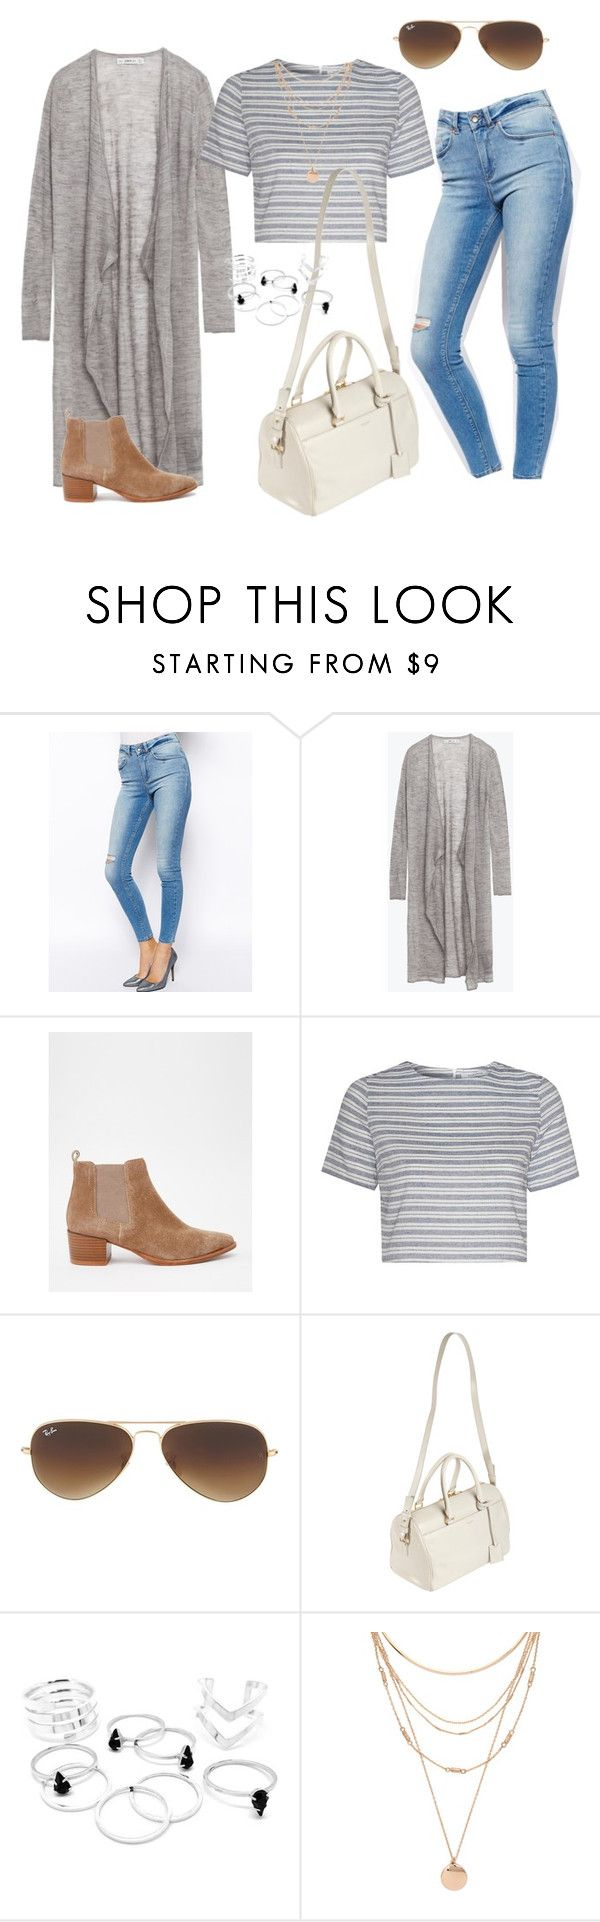 """""""Untitled #249"""" by charlotte-down on Polyvore featuring ASOS, Zara, Vagabond, Glamorous, Ray-Ban, Yves Saint Laurent and Forever 21"""